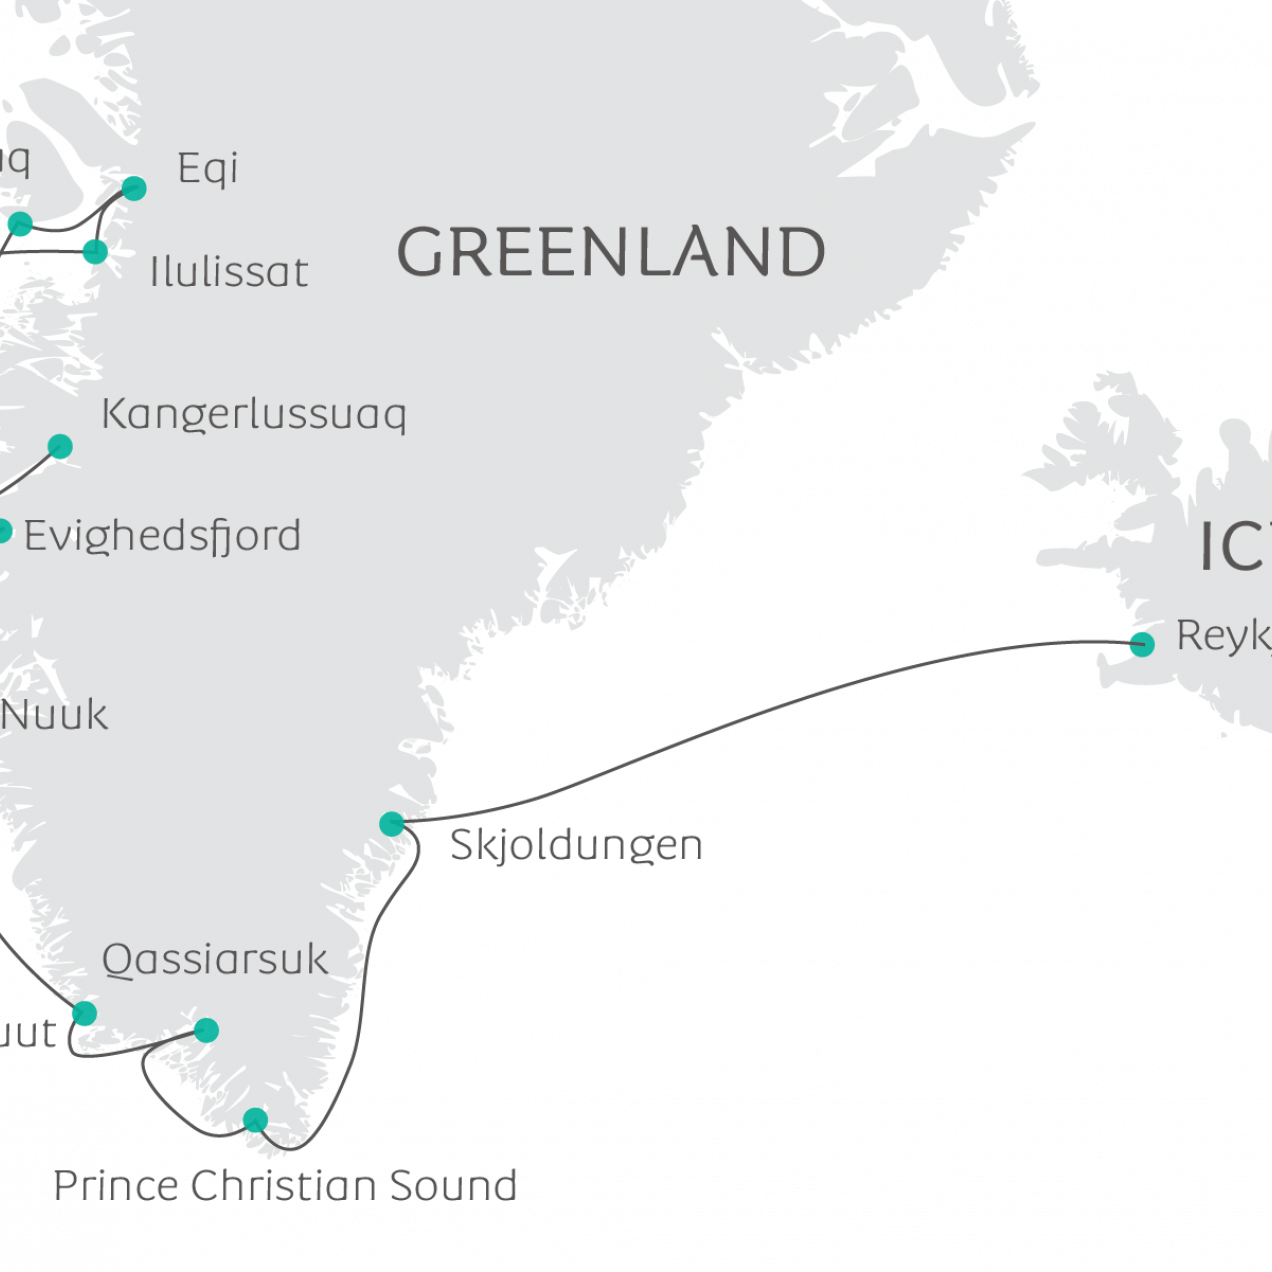 map_in_the_wake_of_Eric_the_red_from_Greenland_to_Iceland